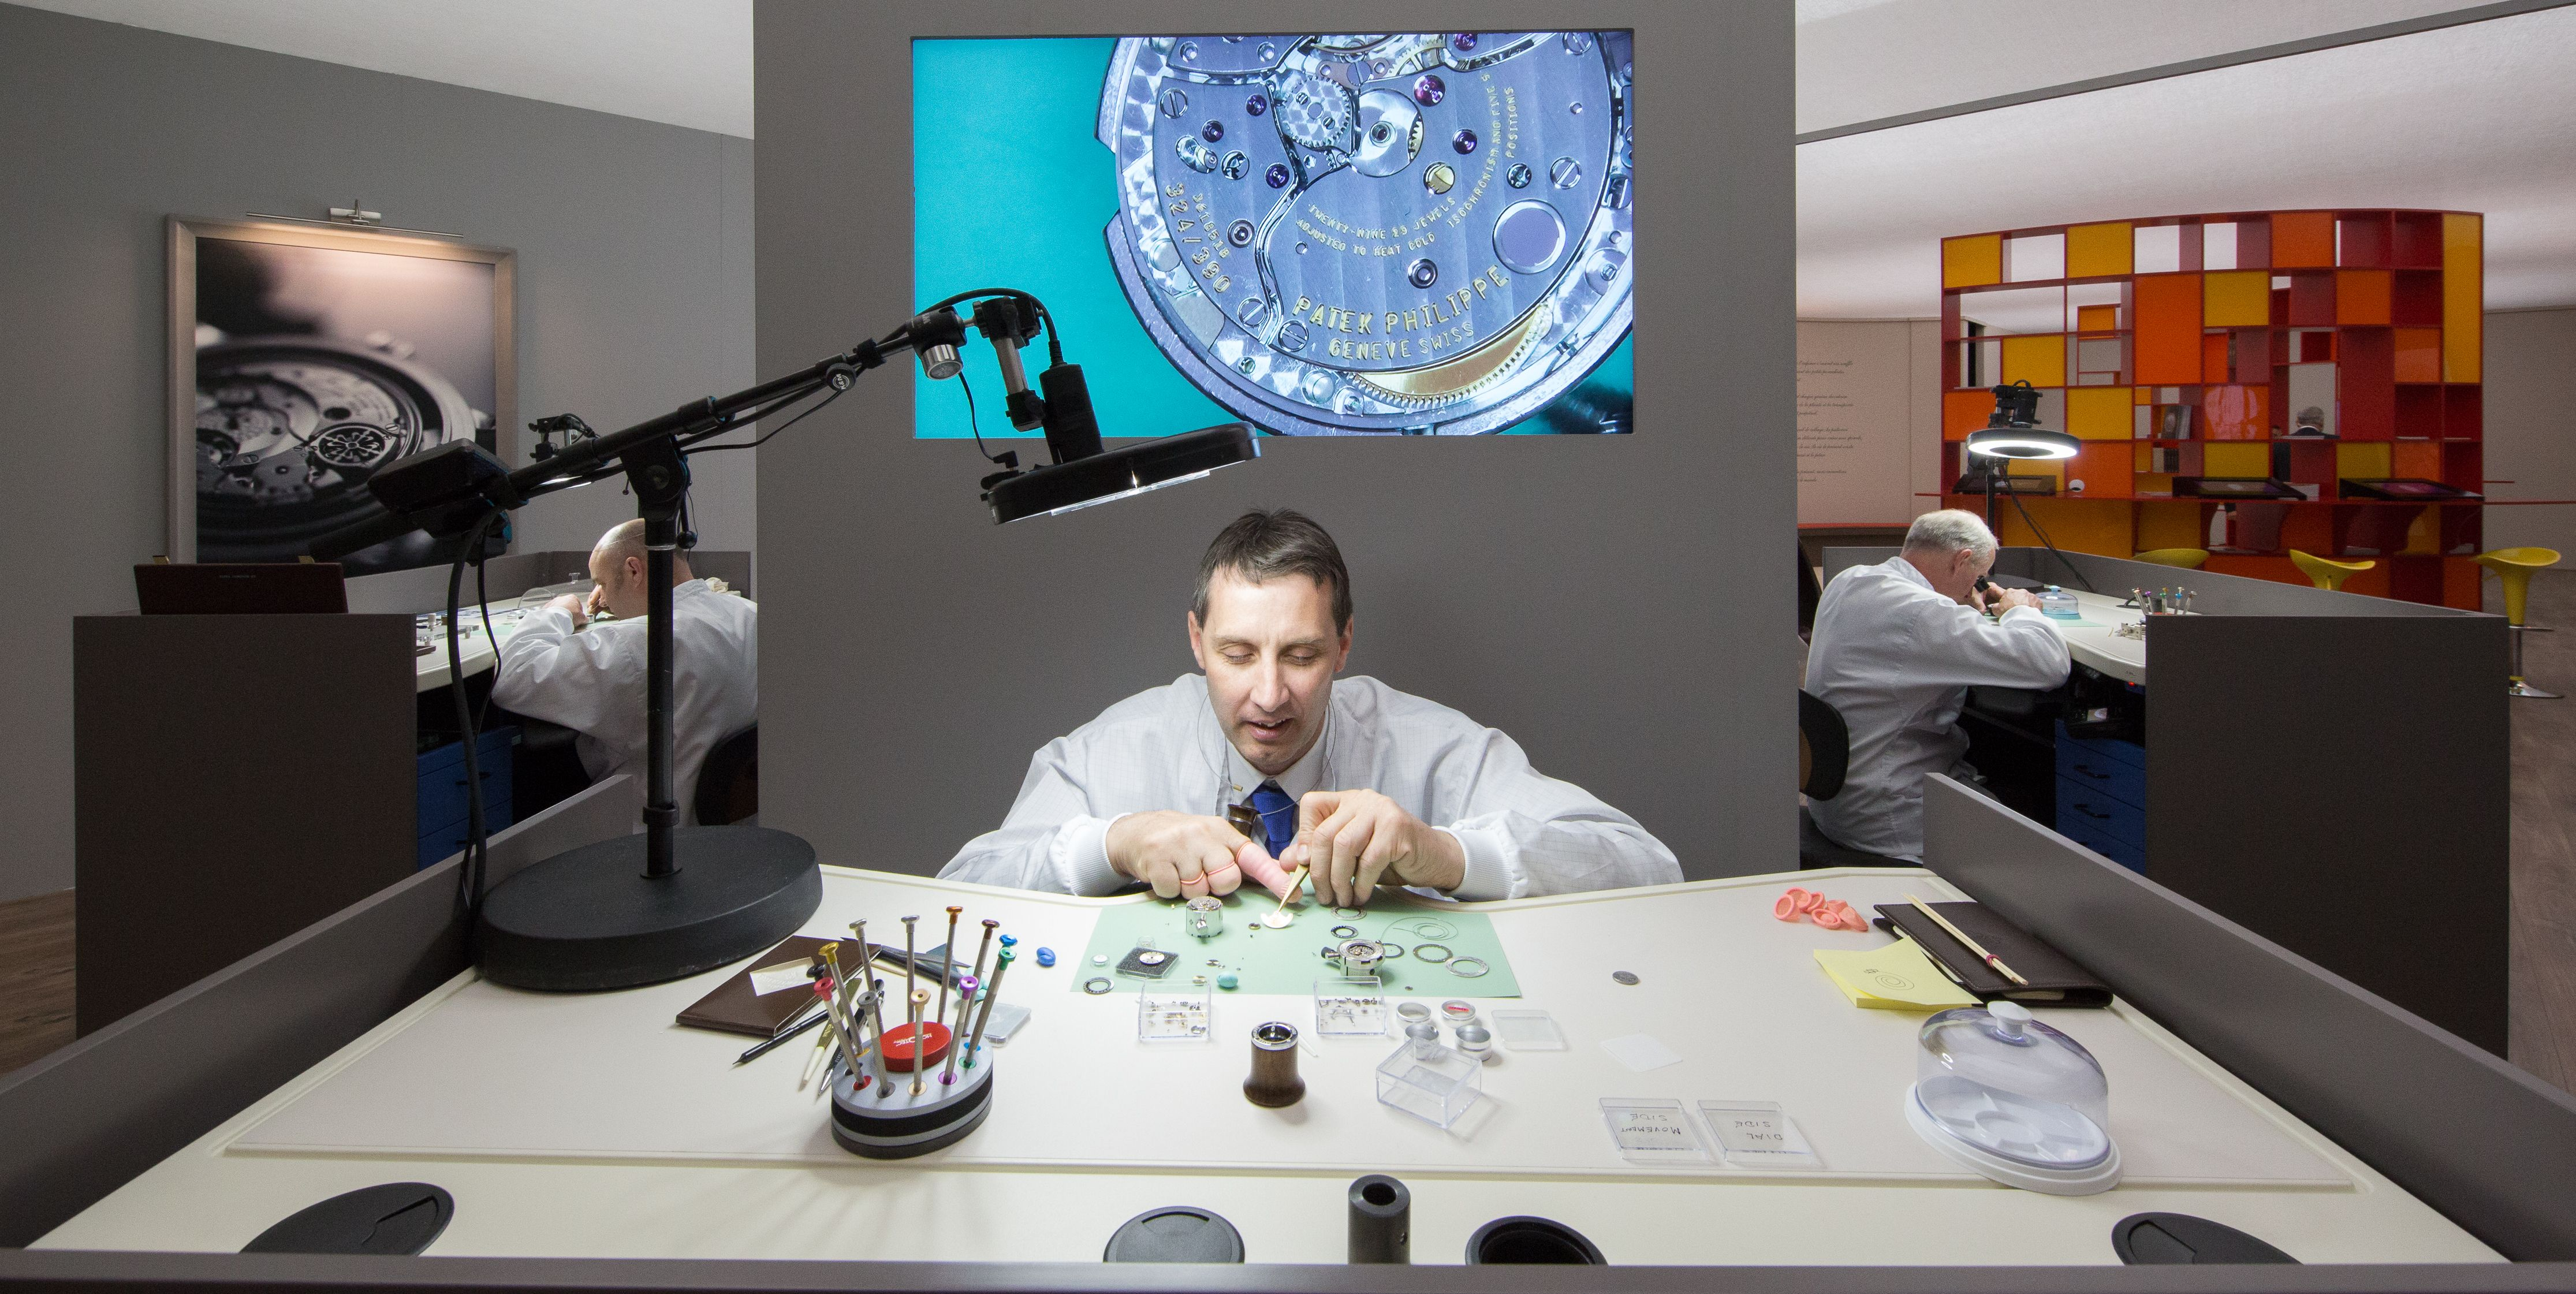 Baselworld 2019 Year of Change for Watchmakers and Jewellery Makers - Patek Philippe baselworld 2019 Baselworld 2019: Year of Change for Watchmakers and Jewellery Makers Baselworld 2019 Year of Change for Watchmakers and Jewellery Makers Patek Philippe